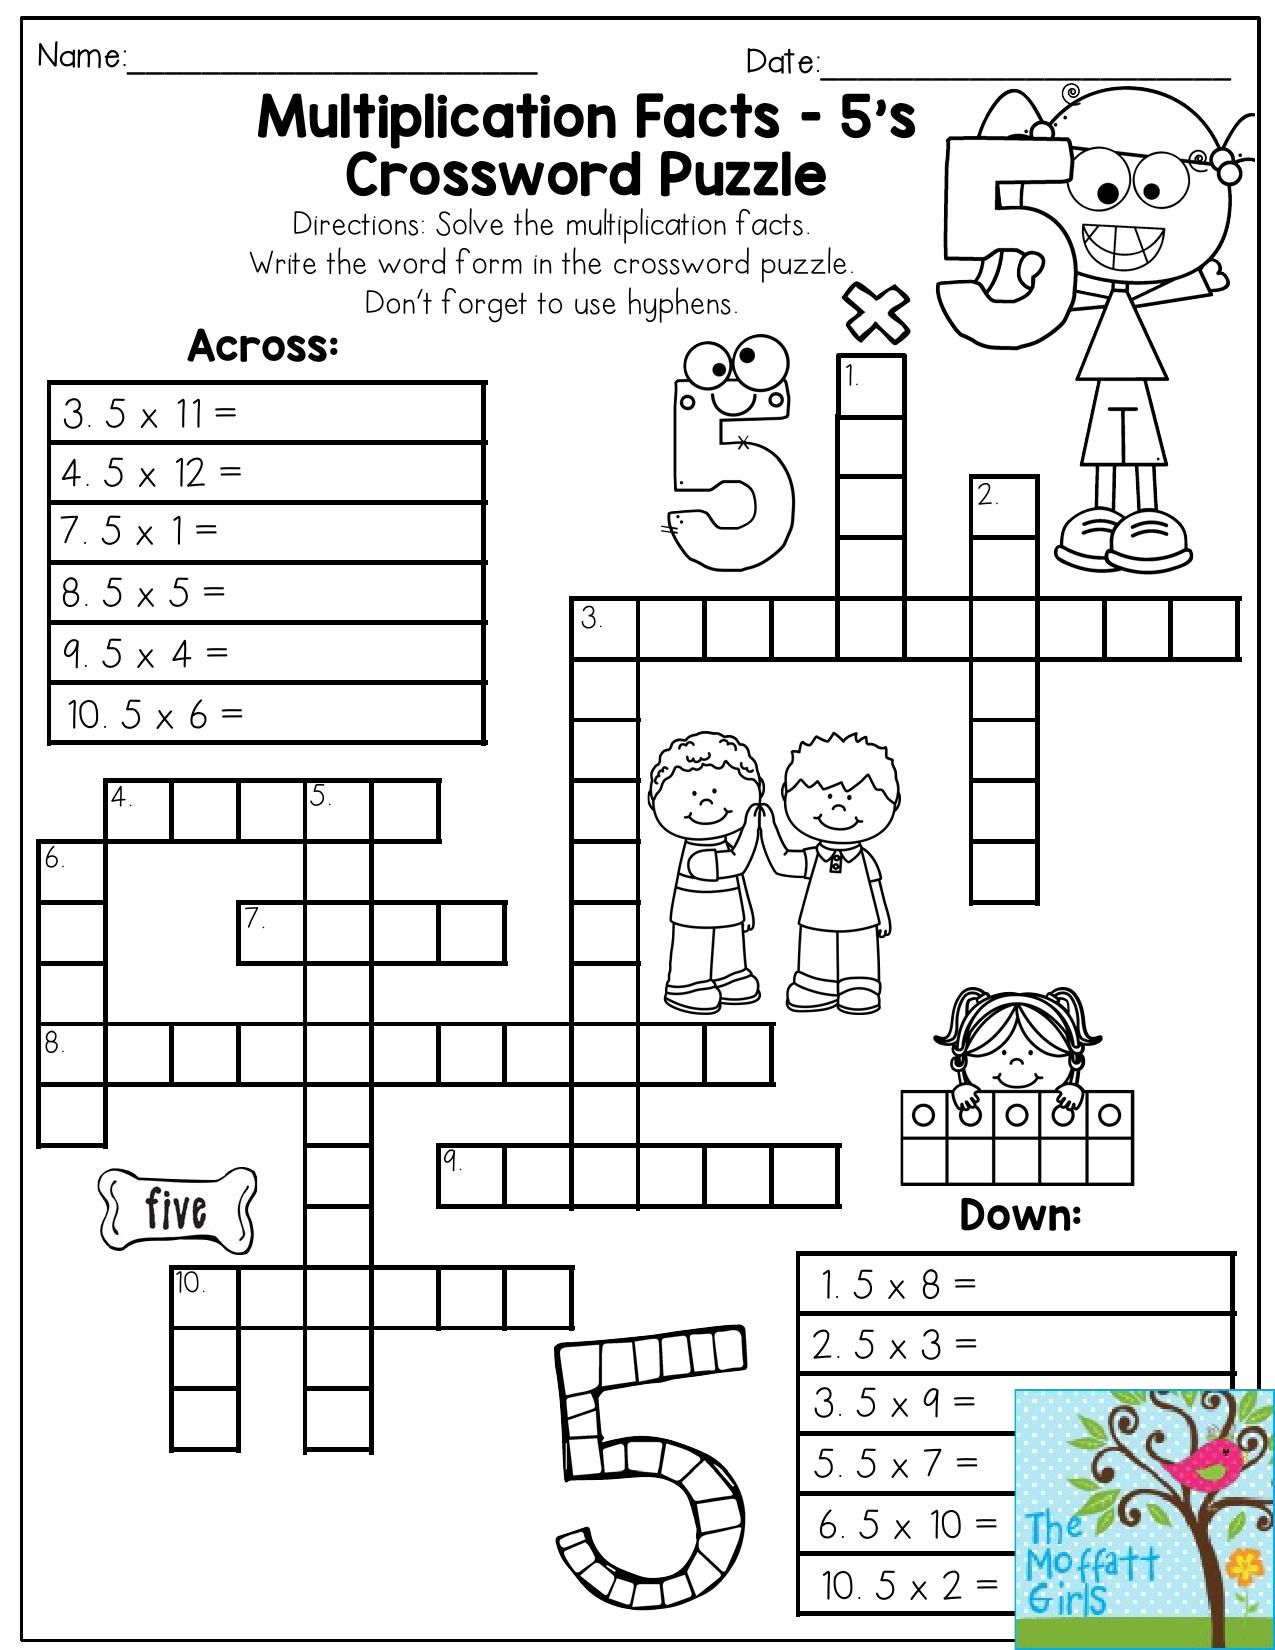 Multiplication Facts Crossword Puzzle- Third Grade Students Love - Printable Crossword Puzzles For Third Graders